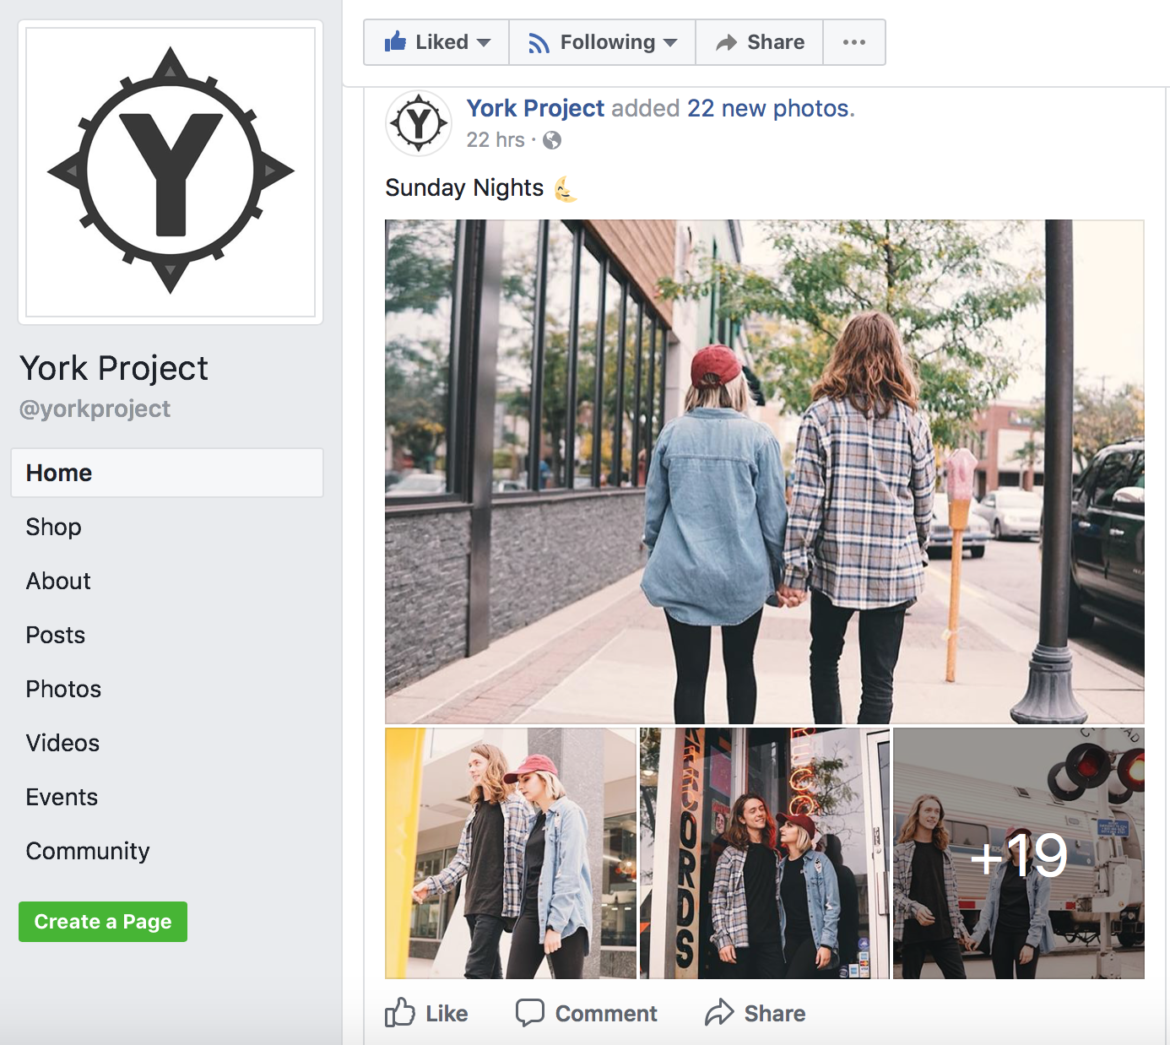 York Project uses social media to target specific demographics for their clothing lines. They also post hip and trendy photos to appeal to their customers.